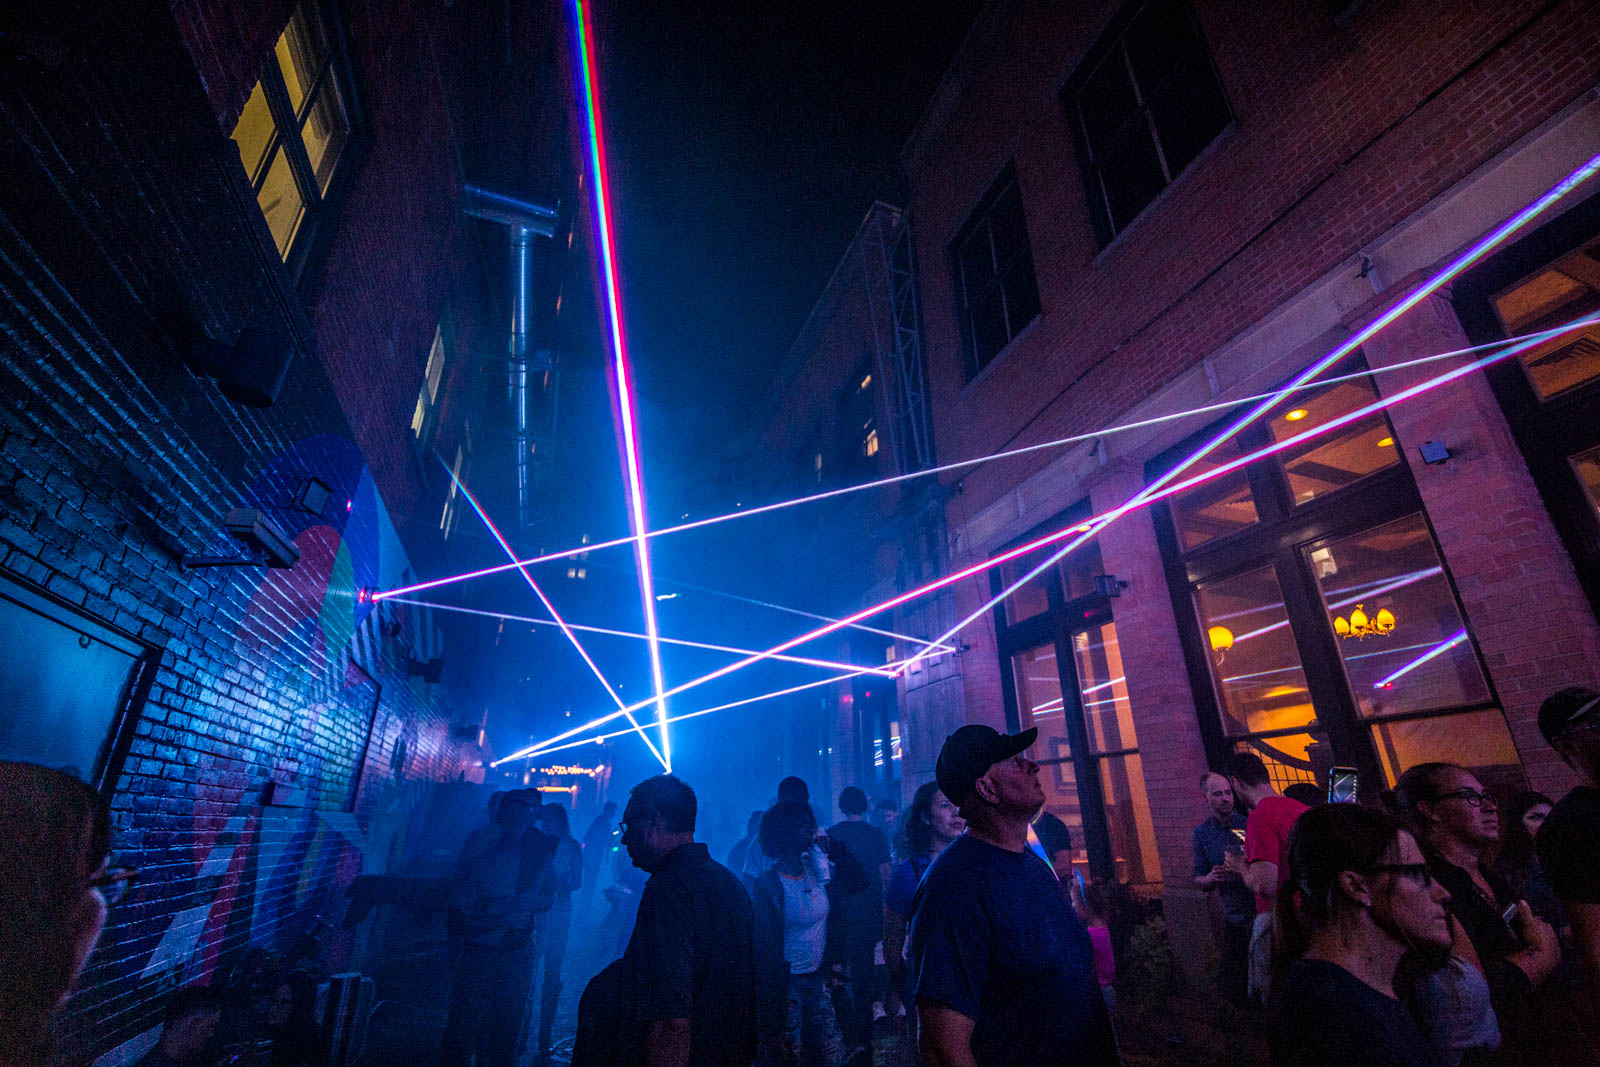 PICTURED NEIGHBORHOOD: Downtown / A laser light show can be found in Gano Alley across from the Aronoff Center. / Image: Phil Armstrong // Published: 10.12.19